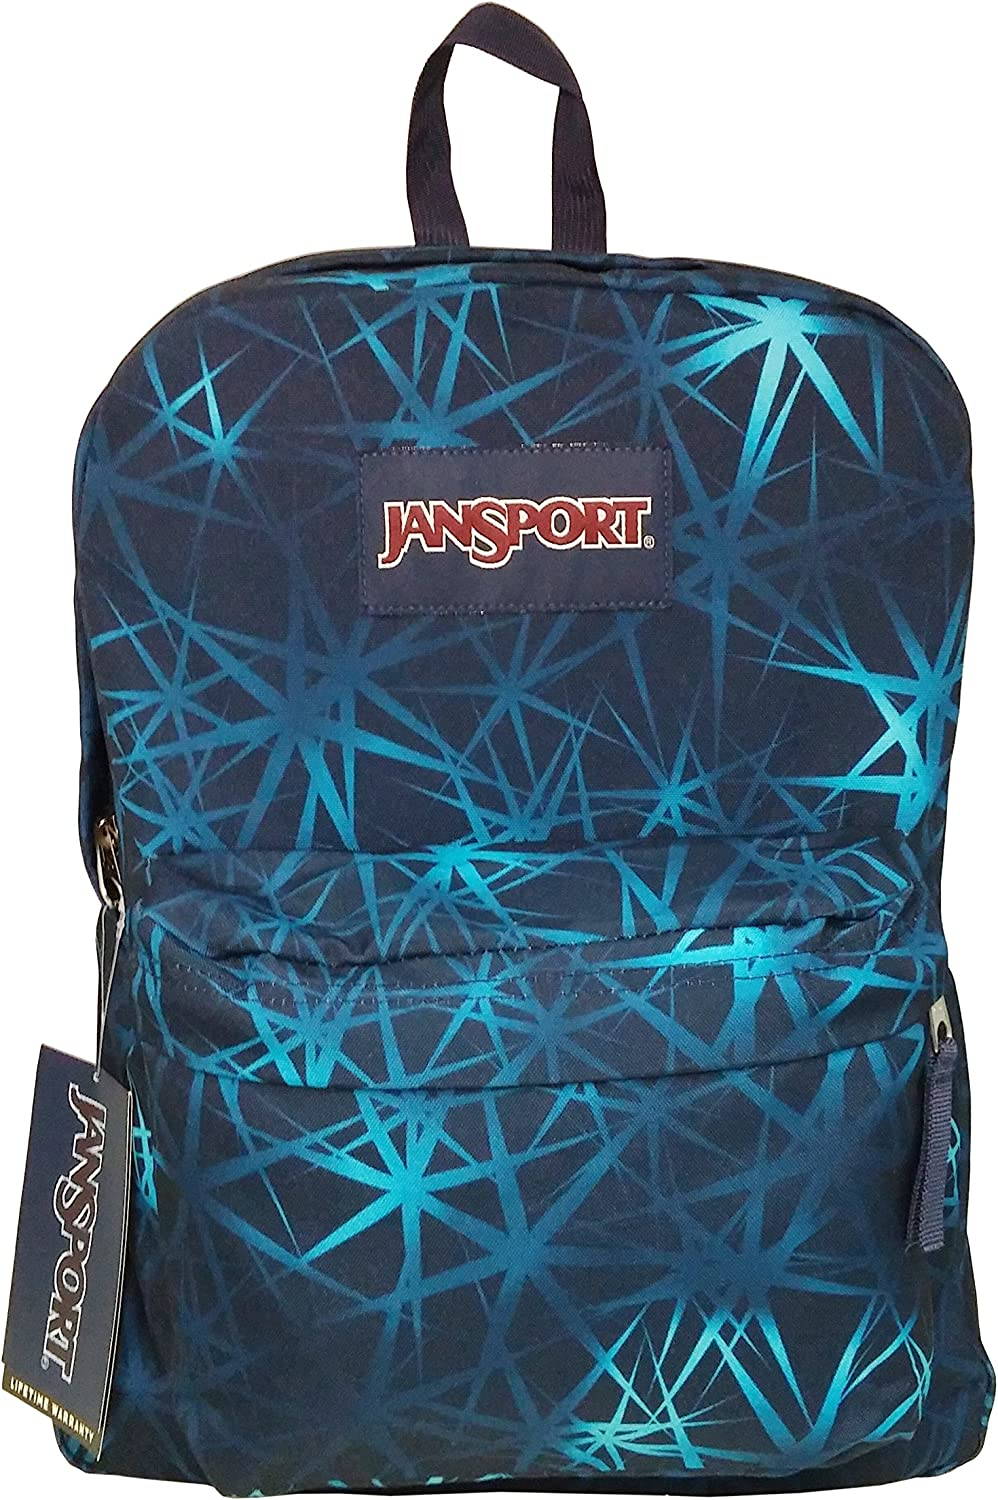 JANPSORT NAVY NIGHT SKY JanSport Classic SUPERBREAK BACKPACK